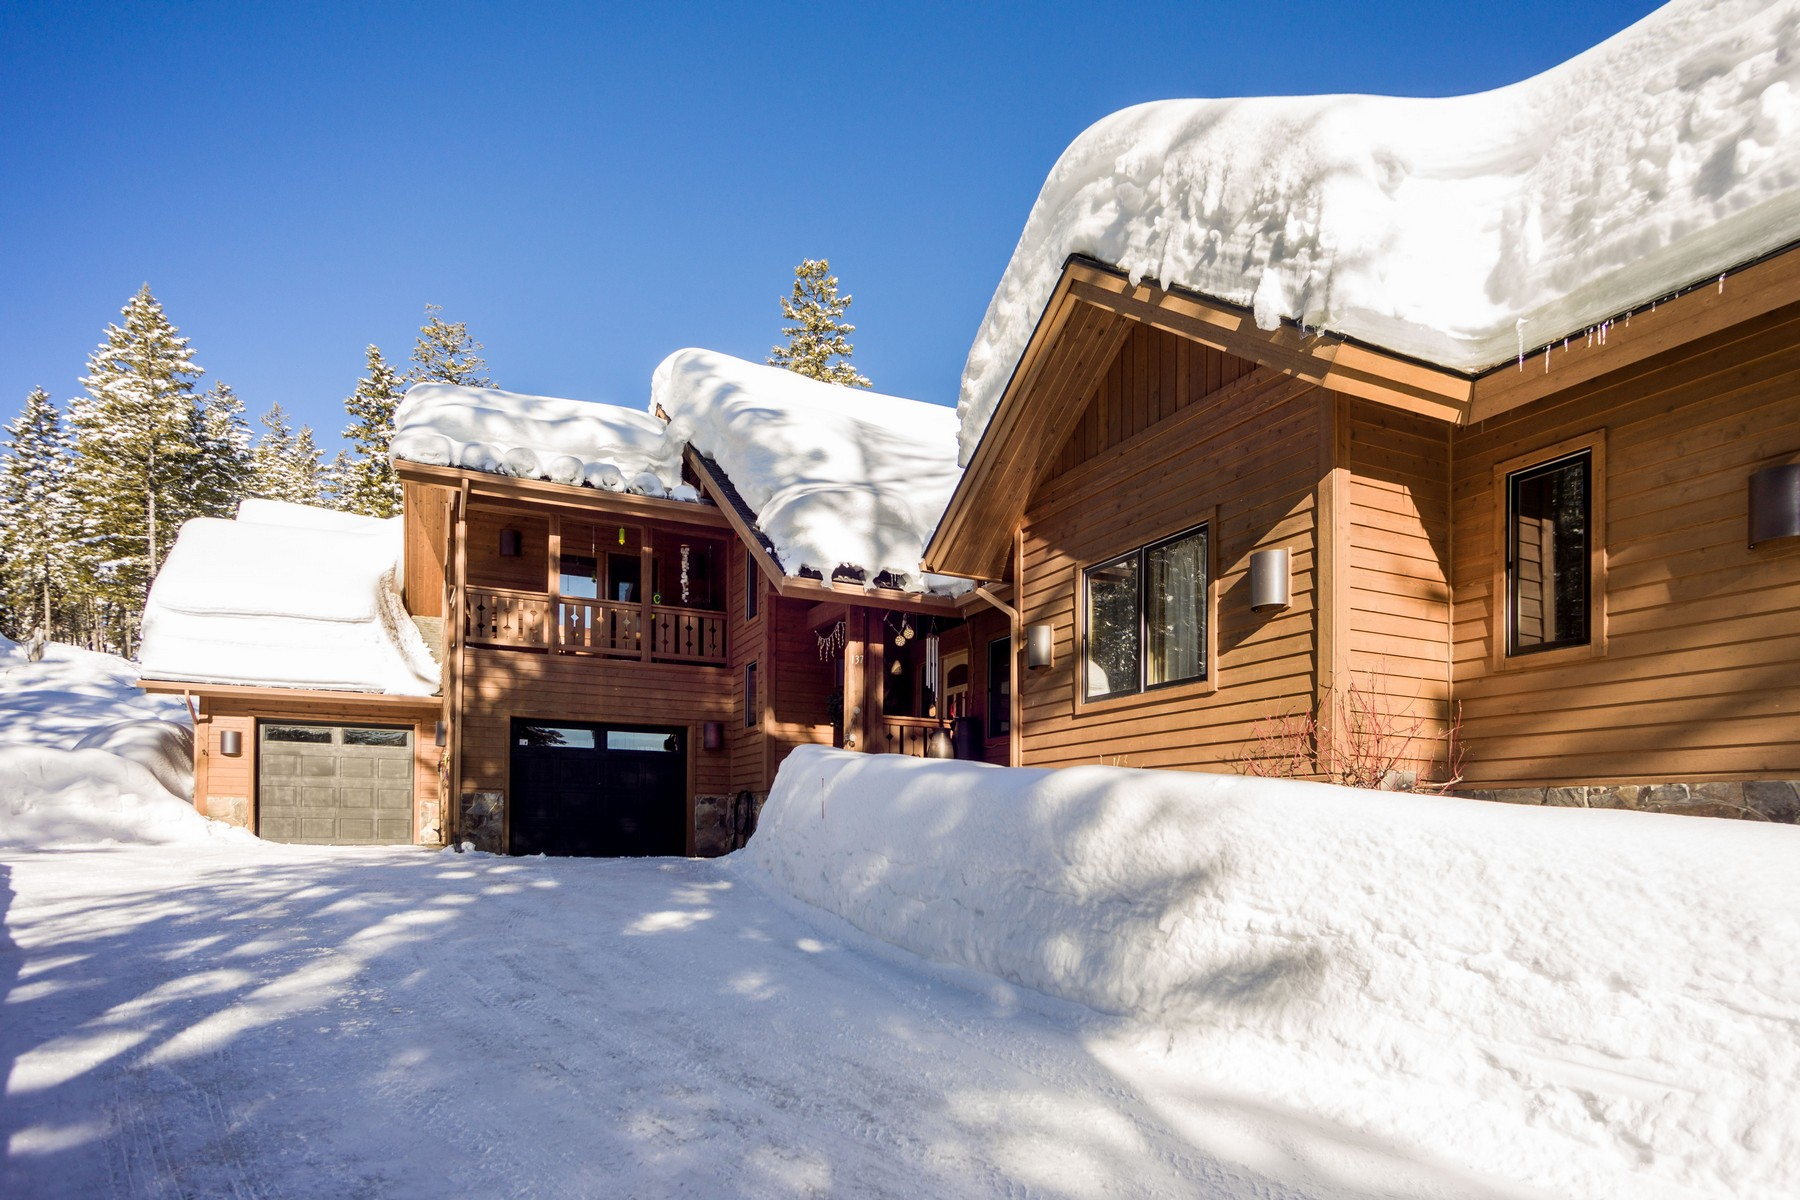 Single Family Home for Sale at 137 Ridge Run Dr , Whitefish, MT 59937 137 Ridge Run Dr, Whitefish, Montana, 59937 United States